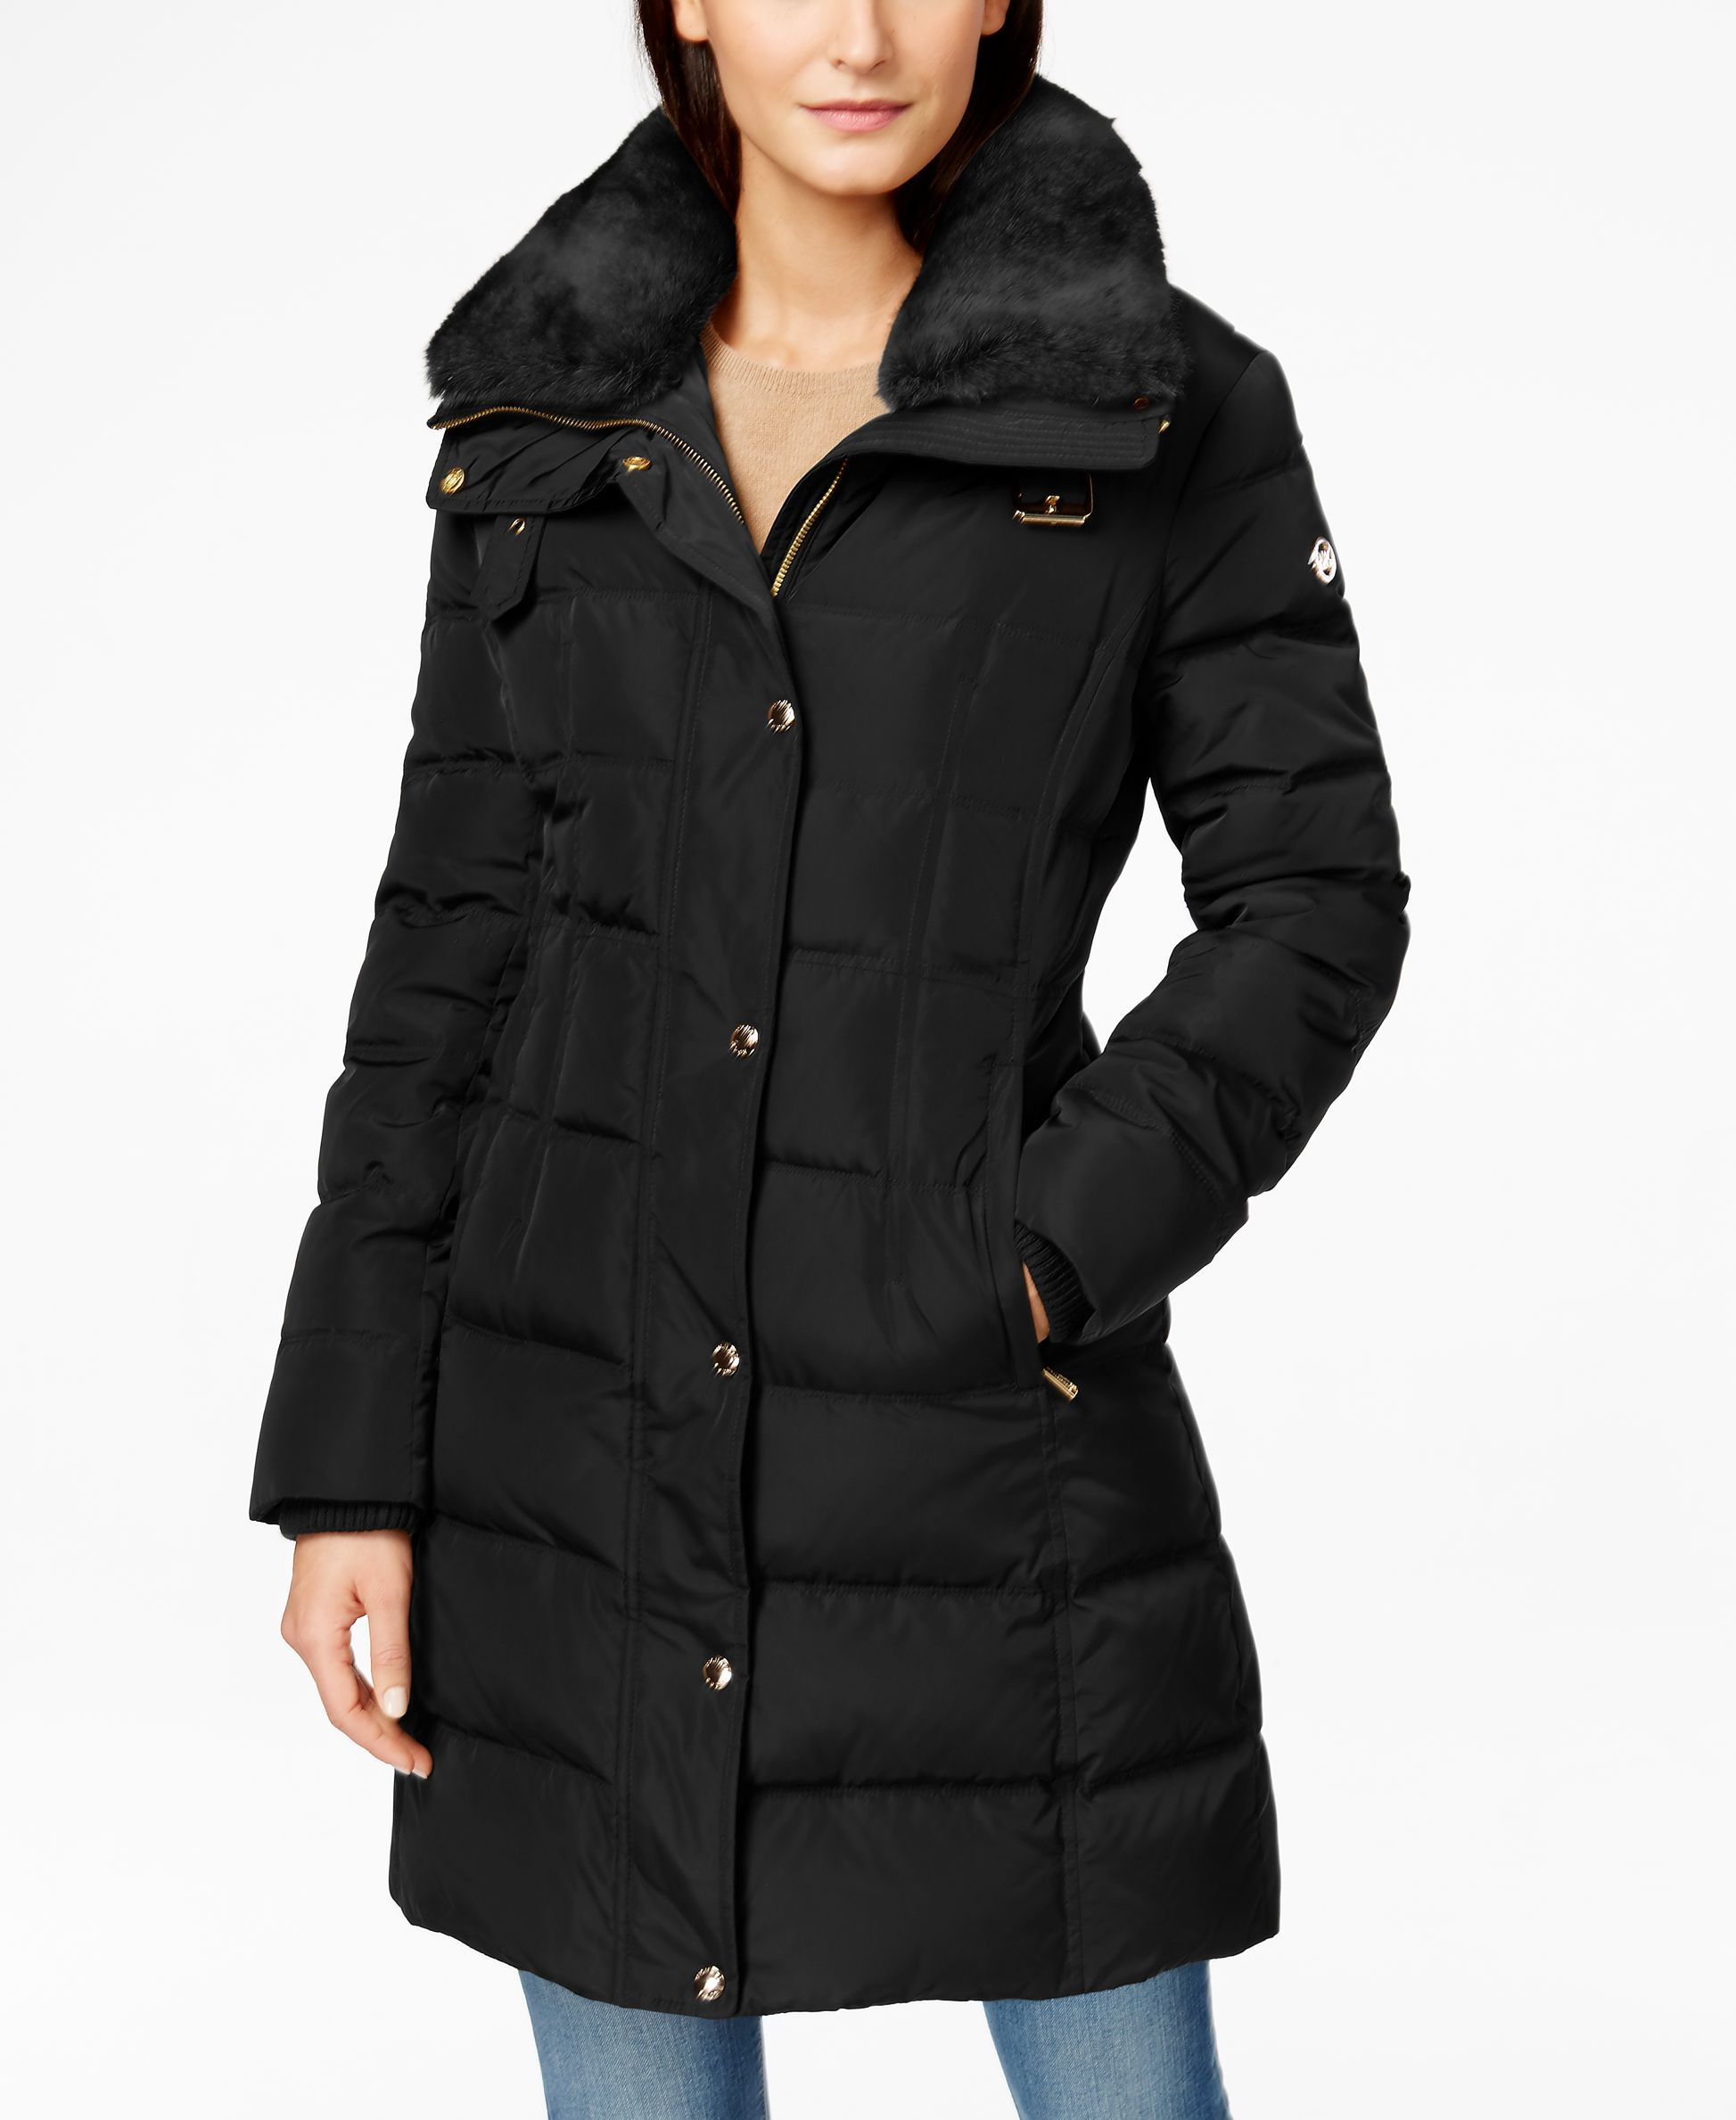 0c17a75586d MICHAEL Michael Kors Faux-Fur-Collar Quilted Puffer Down Coat - Coats -  Women - Macy s